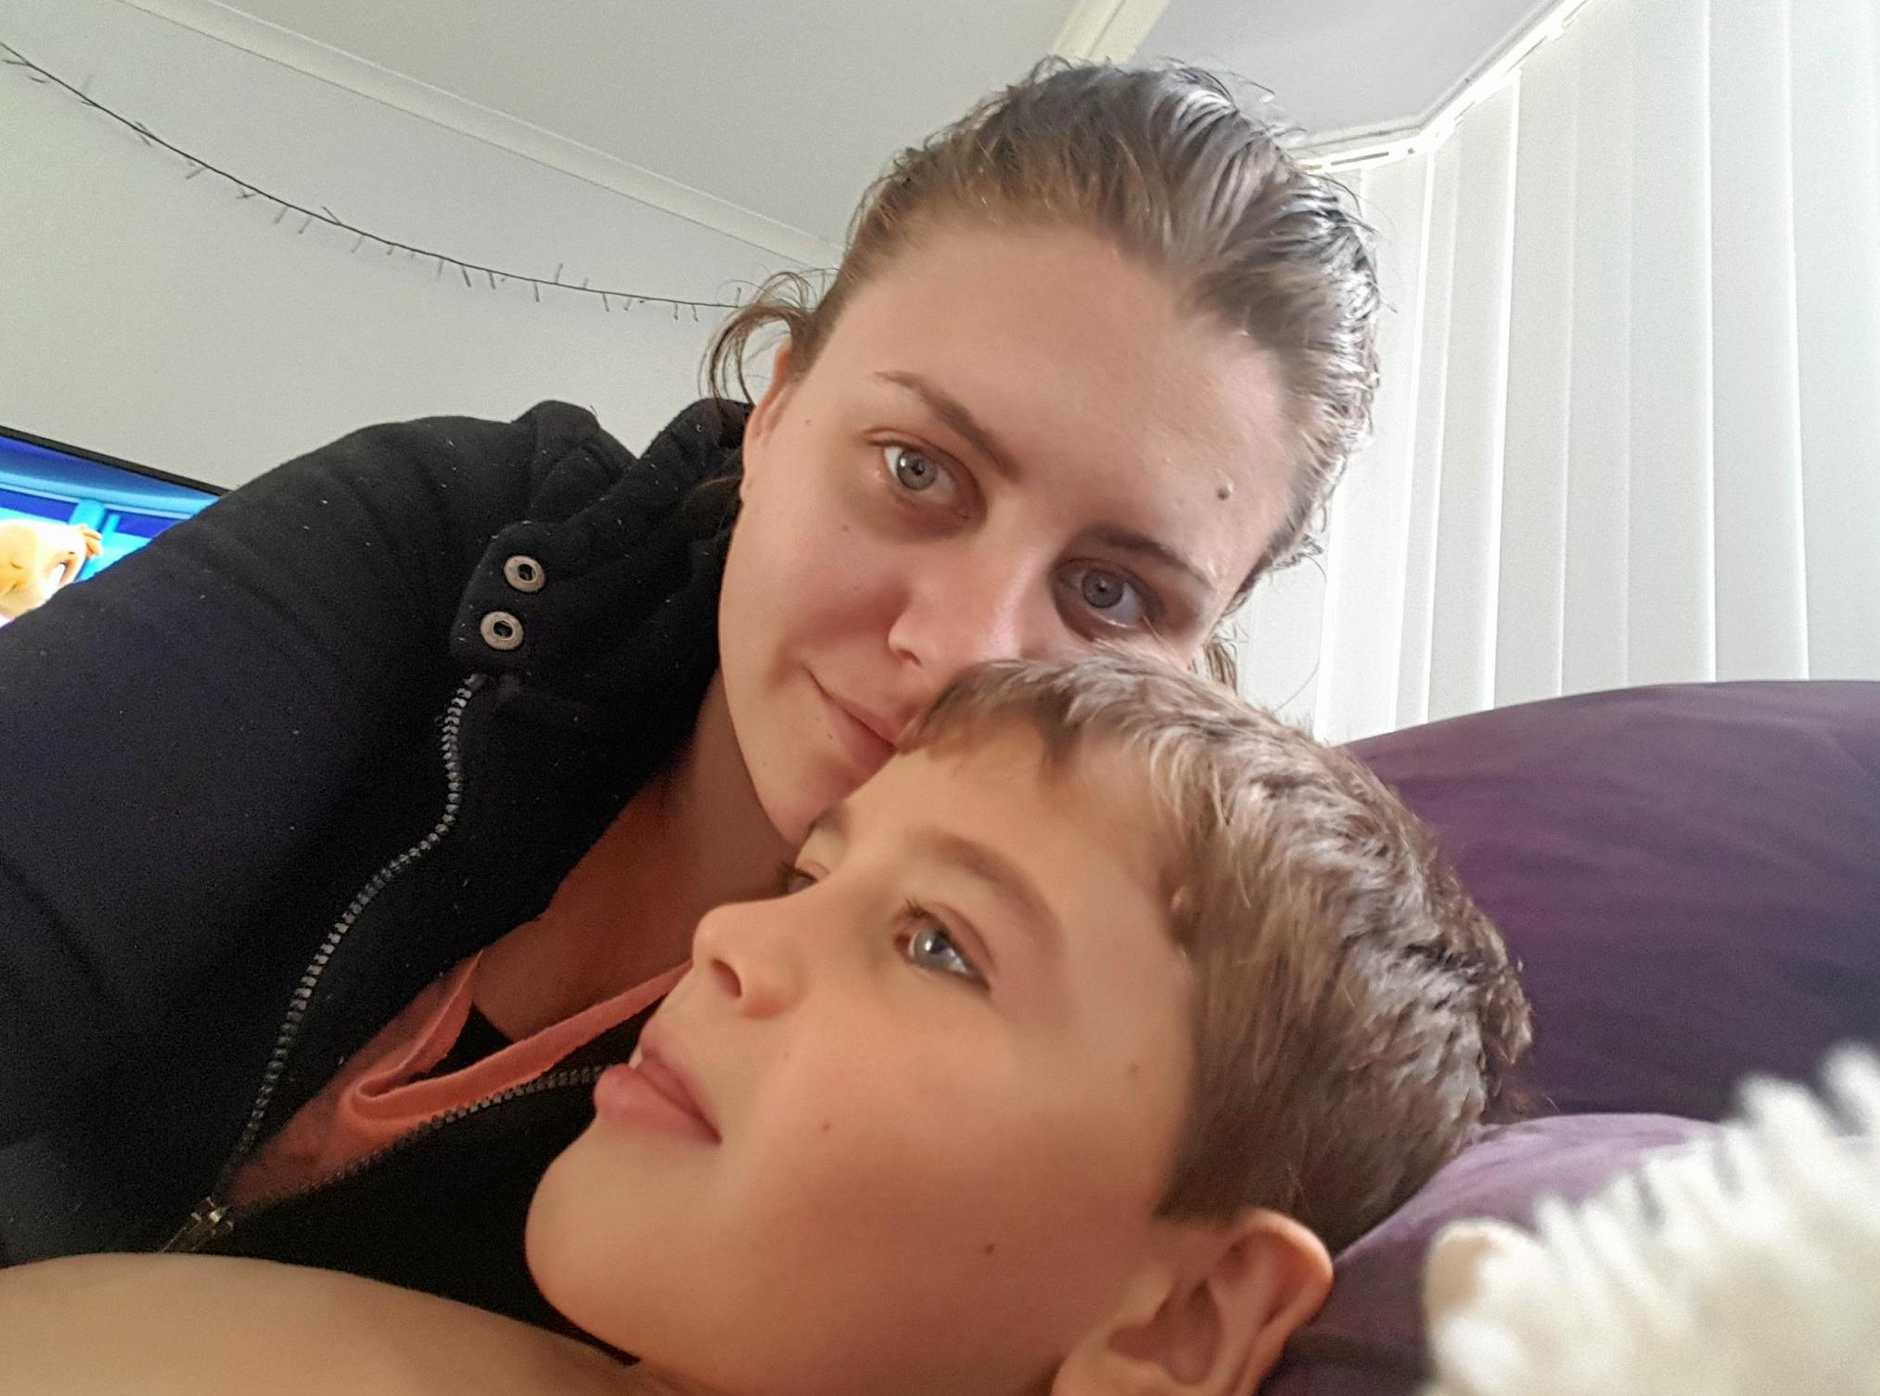 Sophie Cashen, of Aroona, with her son, Miller O'Flynn, who is battling a diagnosis of terminal PKAN - NBIA.